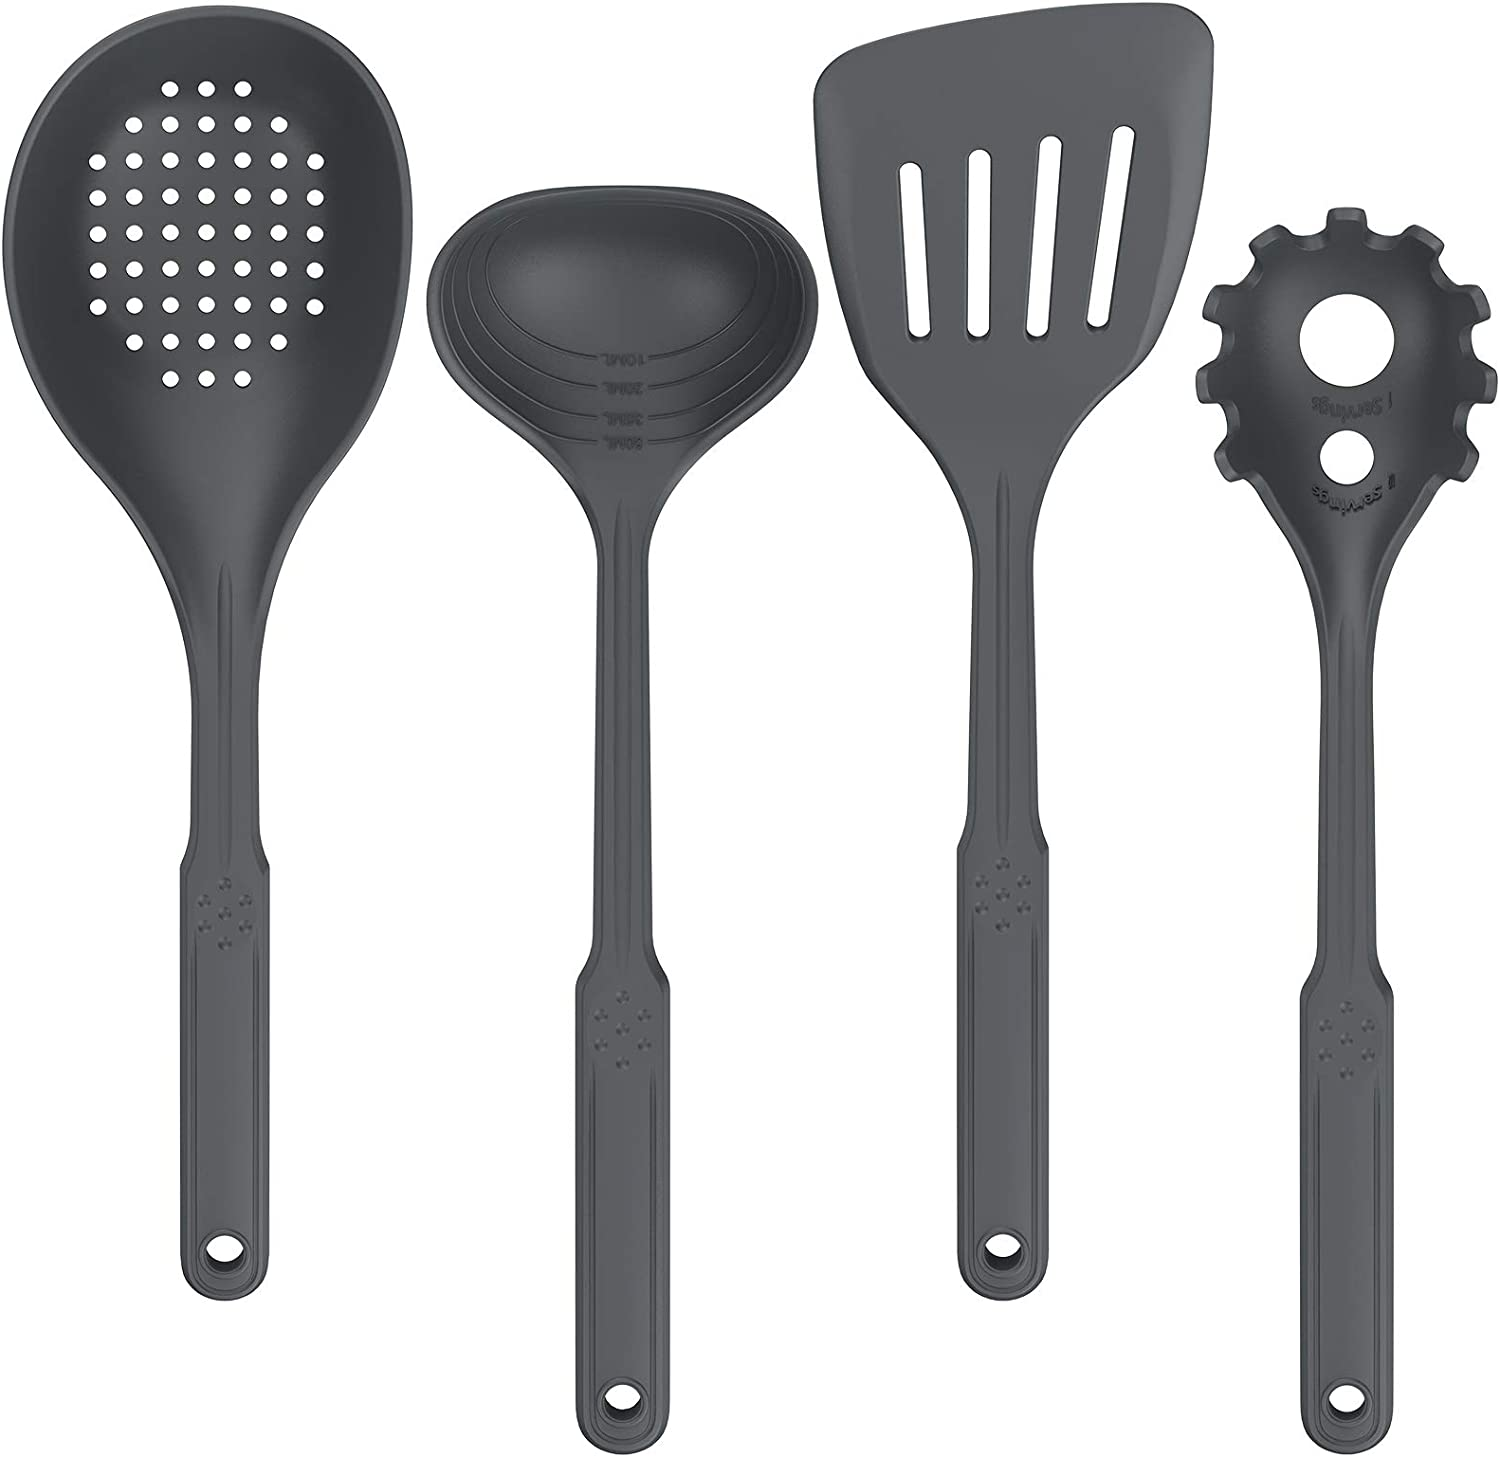 4 Pcs Nonstick Premium Flexible Silicone Cooking Utensils Set with Turner Ladle Skimmer Spoon Pasta Server Uarter Silicone Kitchen Utensil Set Grey Cookware High Heat Resistant for Cooking